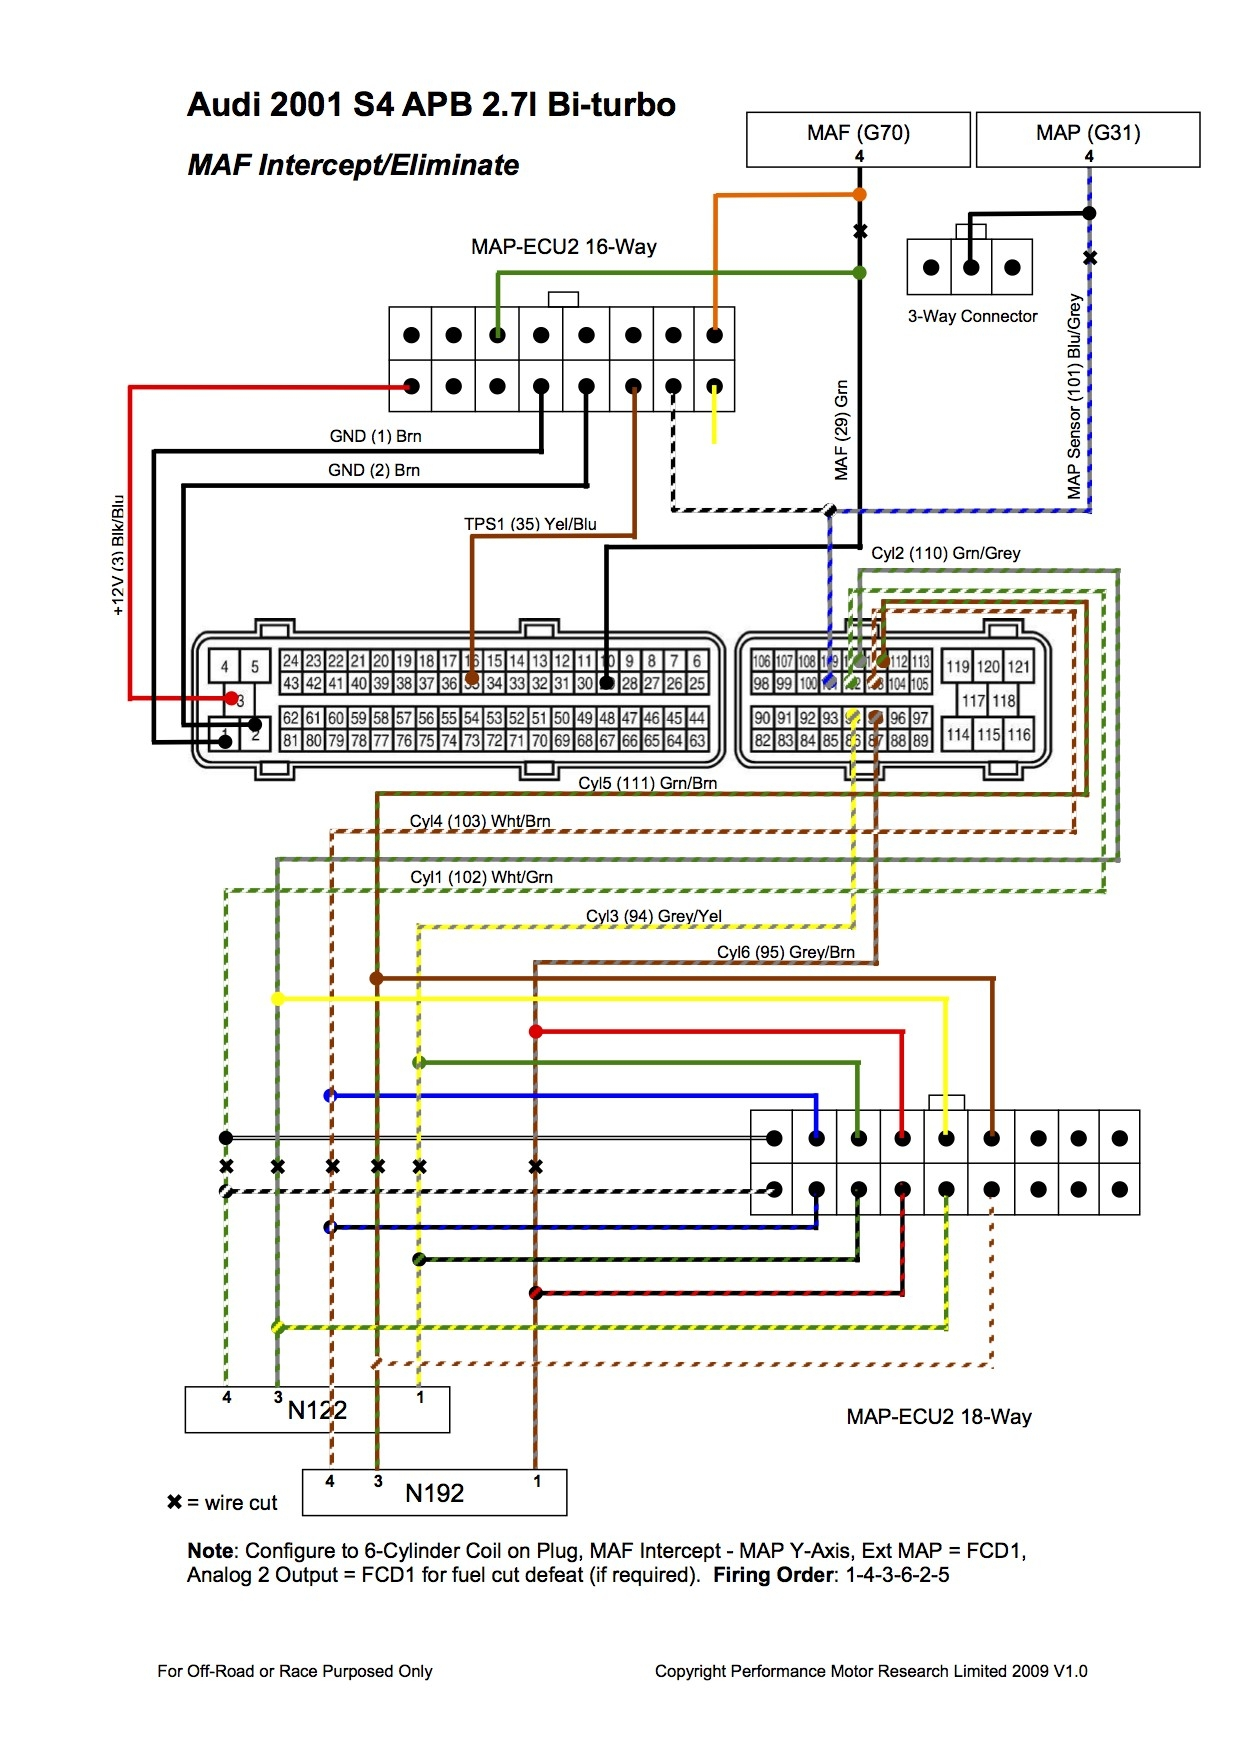 2000 Vw Jetta Stereo Wiring Diagram | Free Wiring Diagram